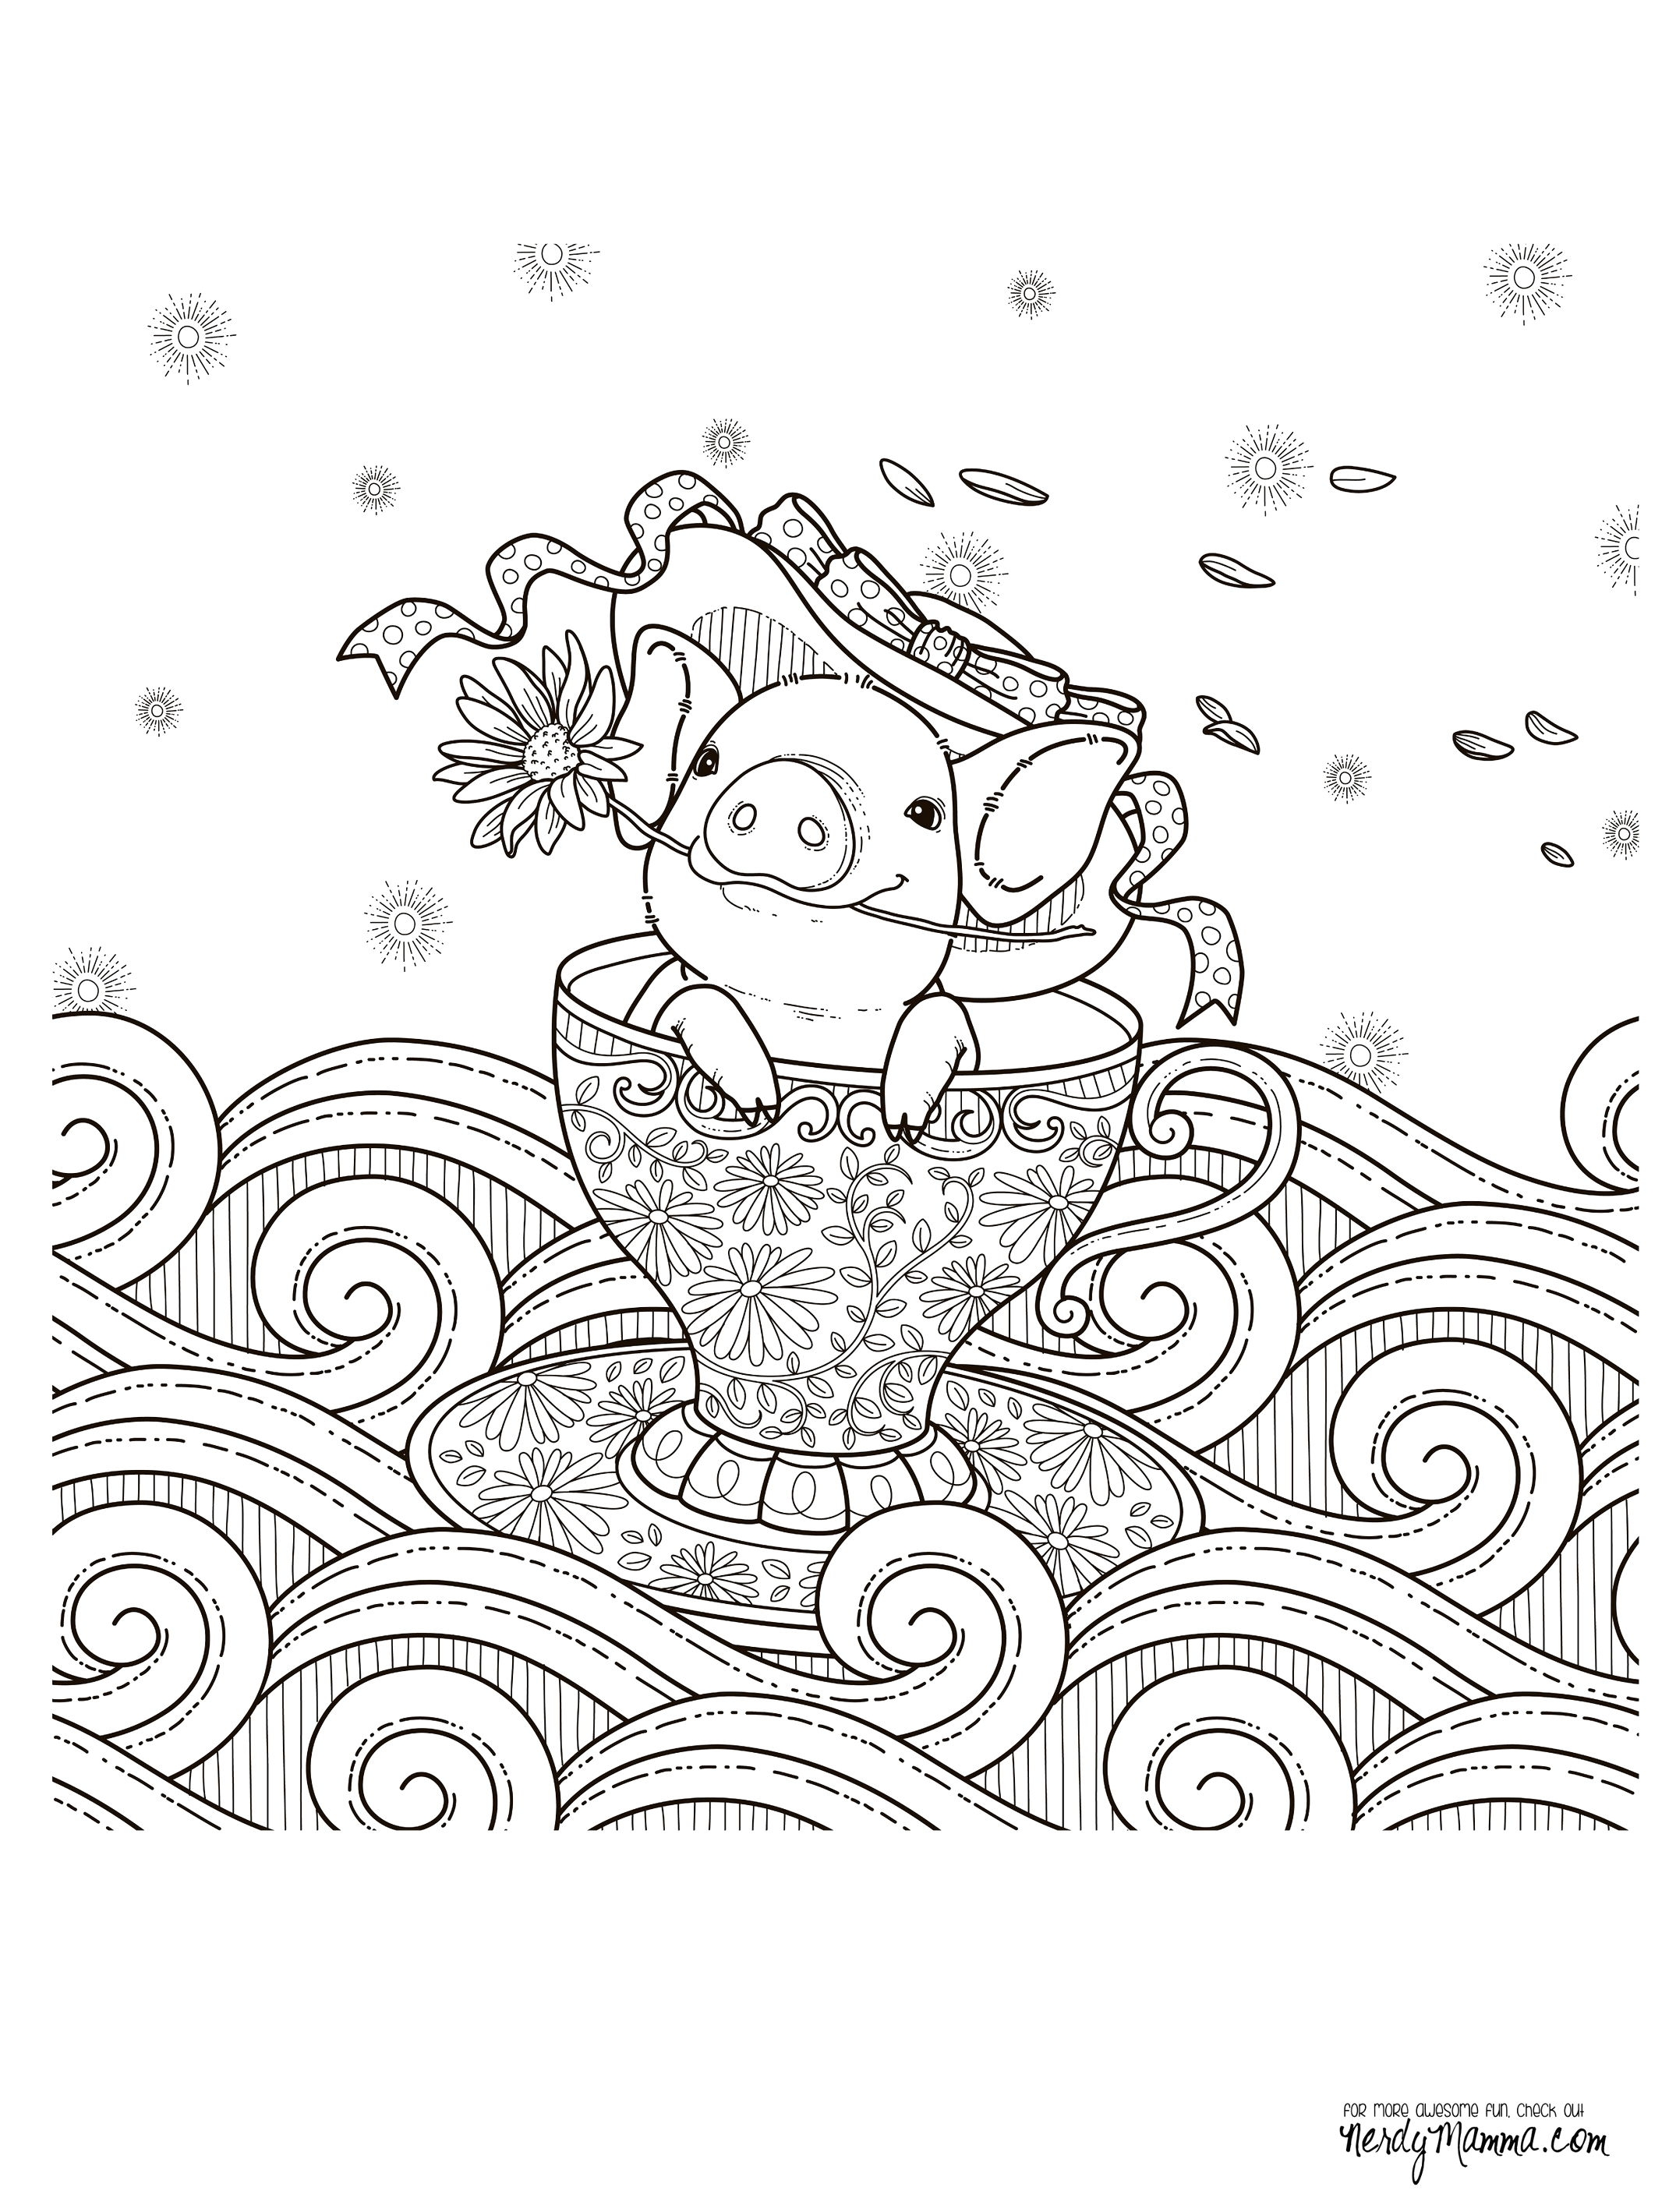 free downloadable adult coloring pages - 224